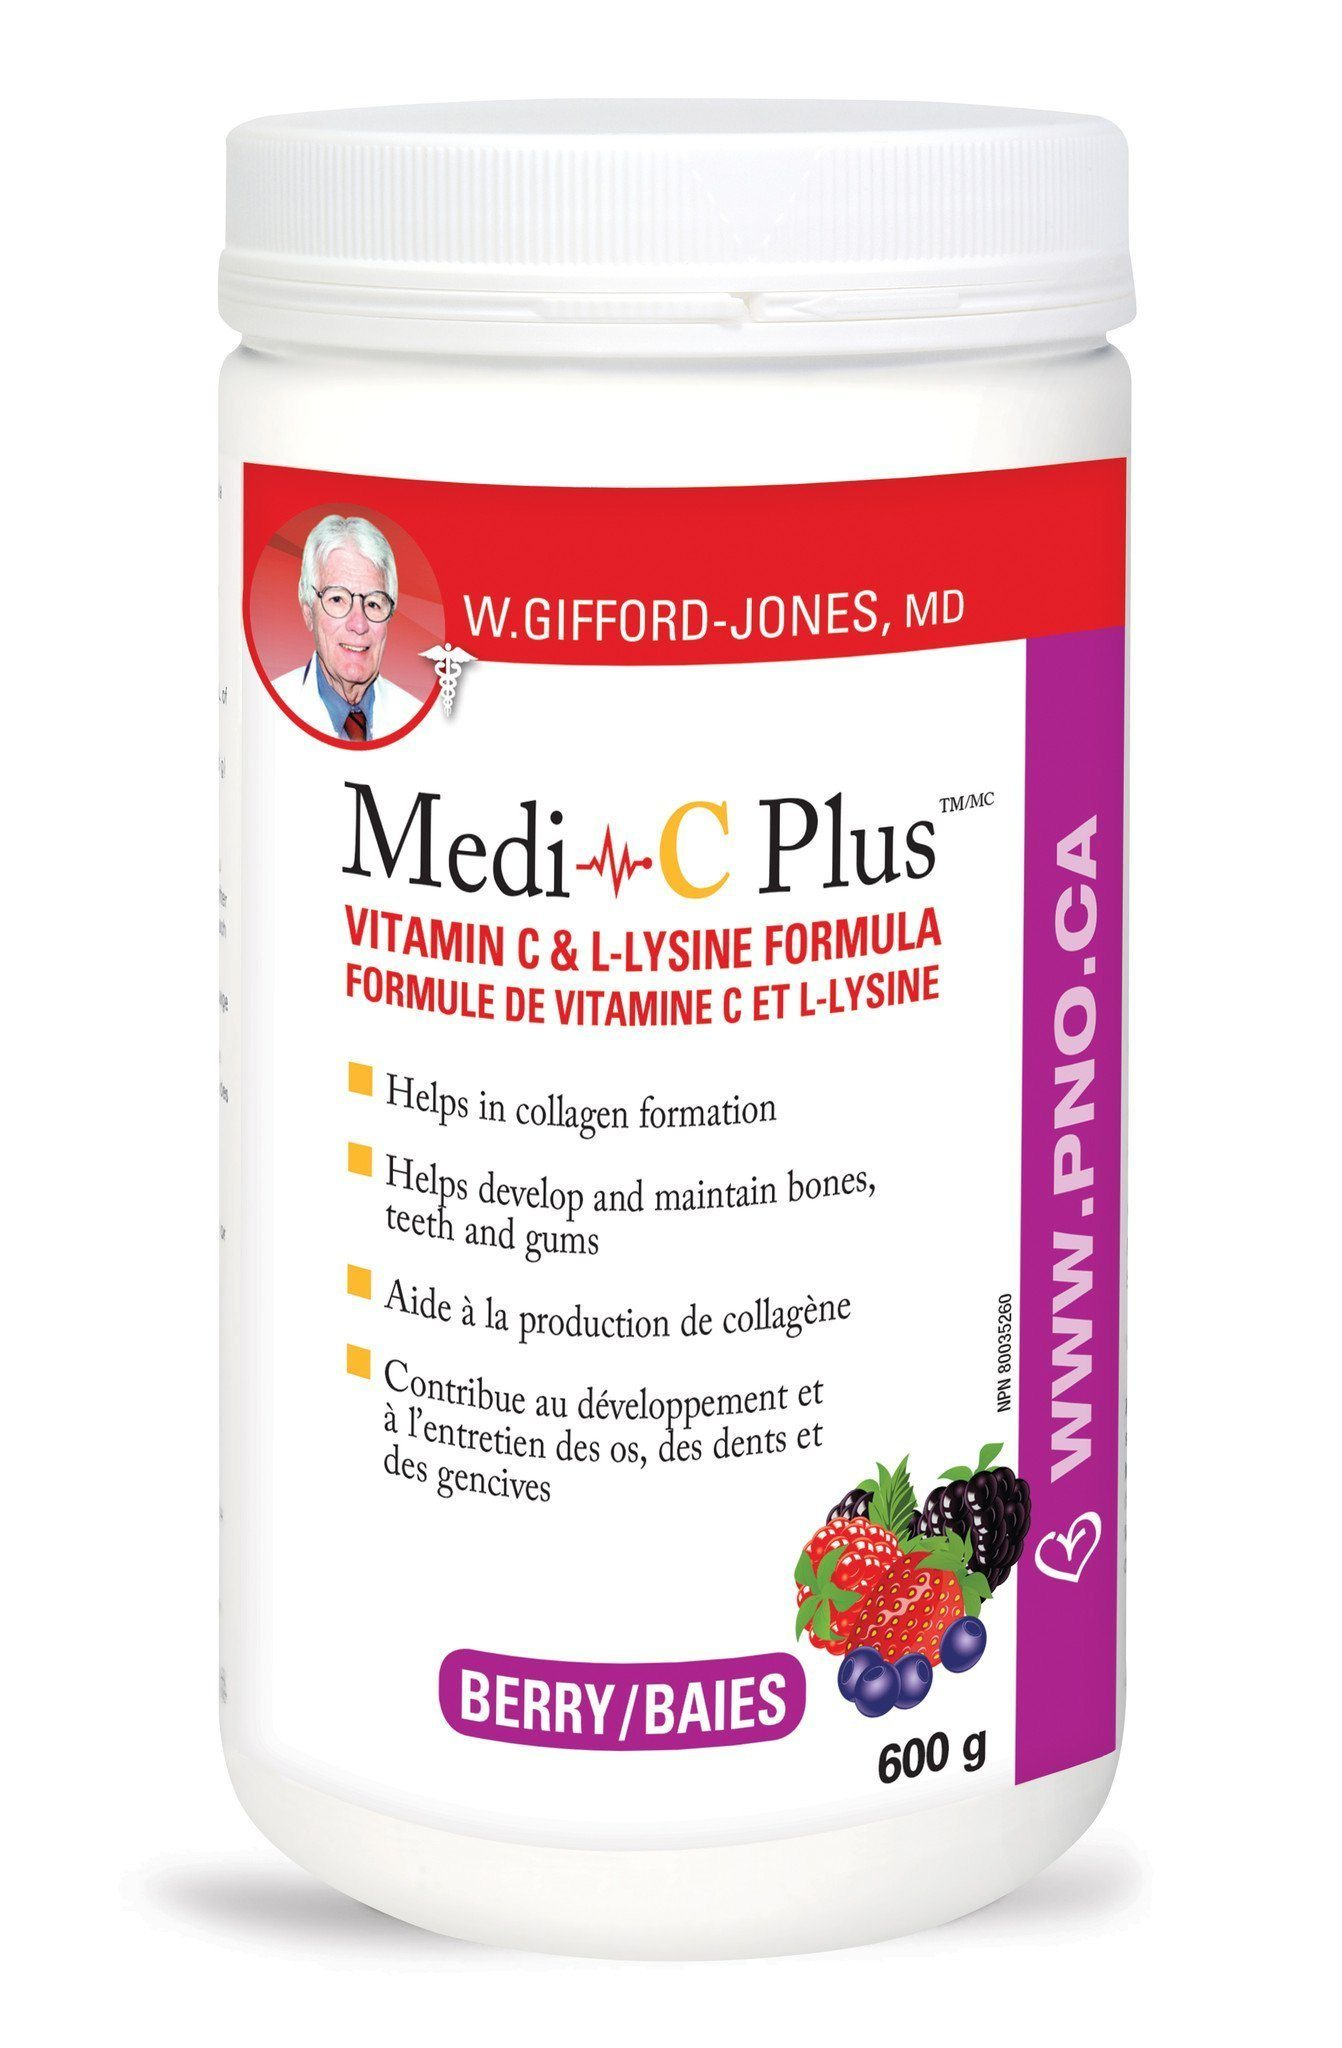 Supplements & Vitamins - Preferred Nutrition - Medi-C Plus Berry, 600g